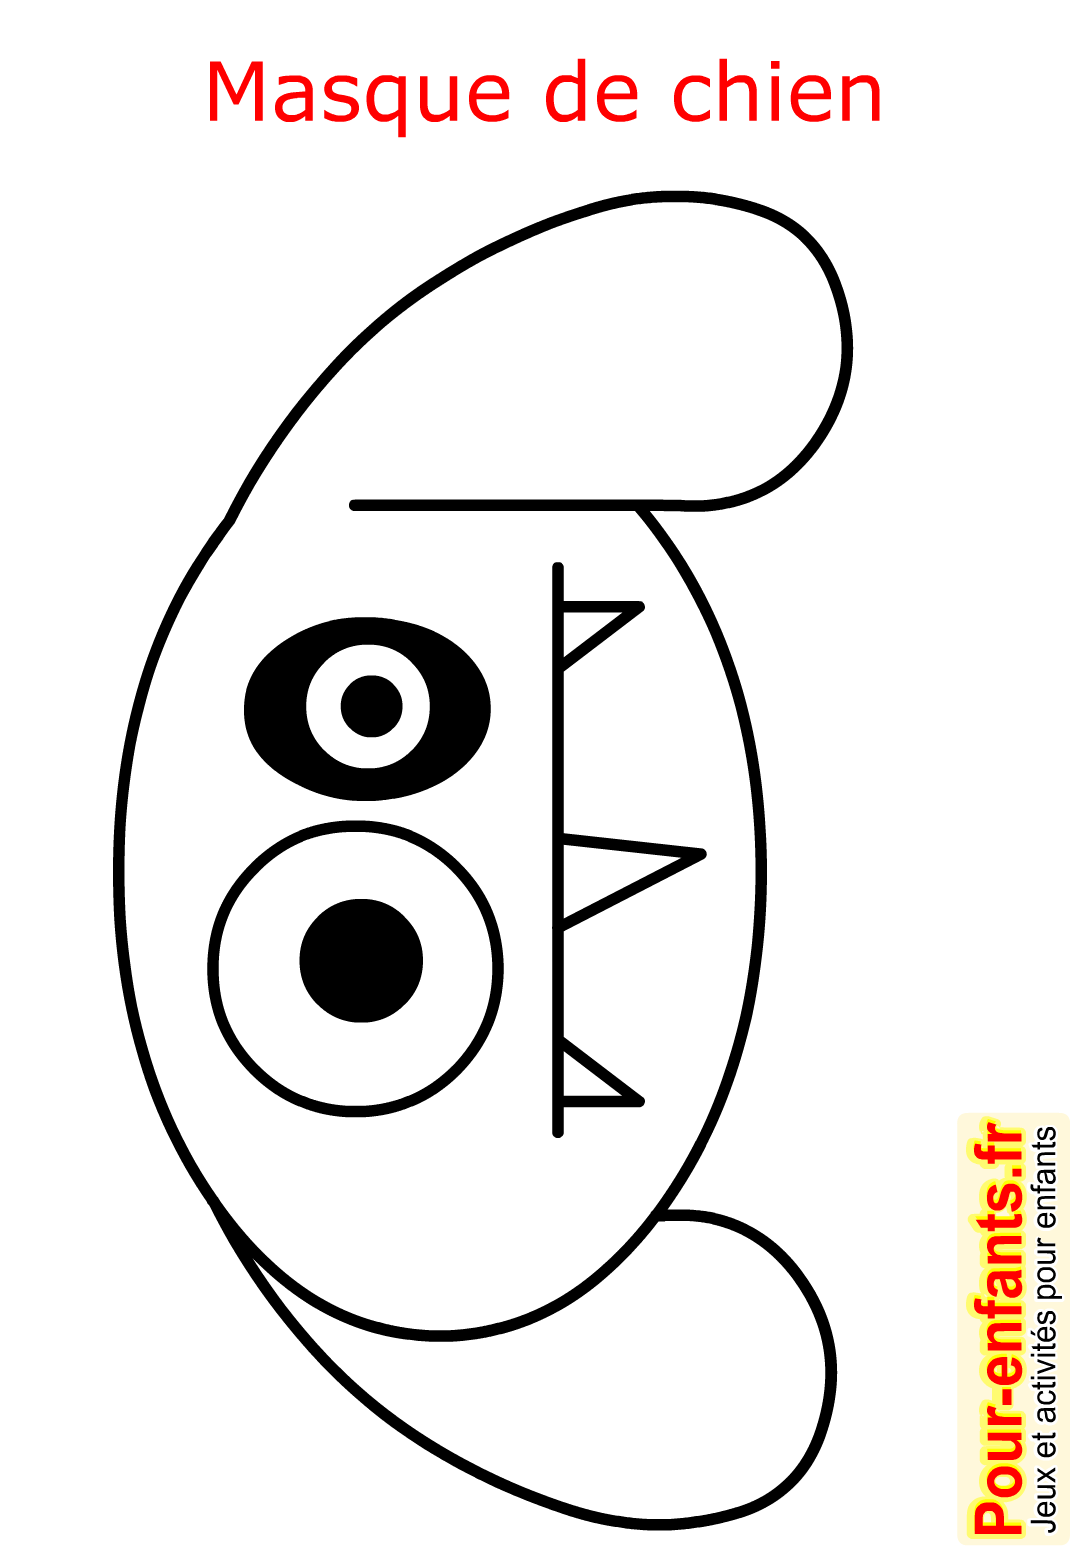 Halloween Coloriage Masque Chien Enfant Fabrication Masques De Picture To Pin On Pinterest